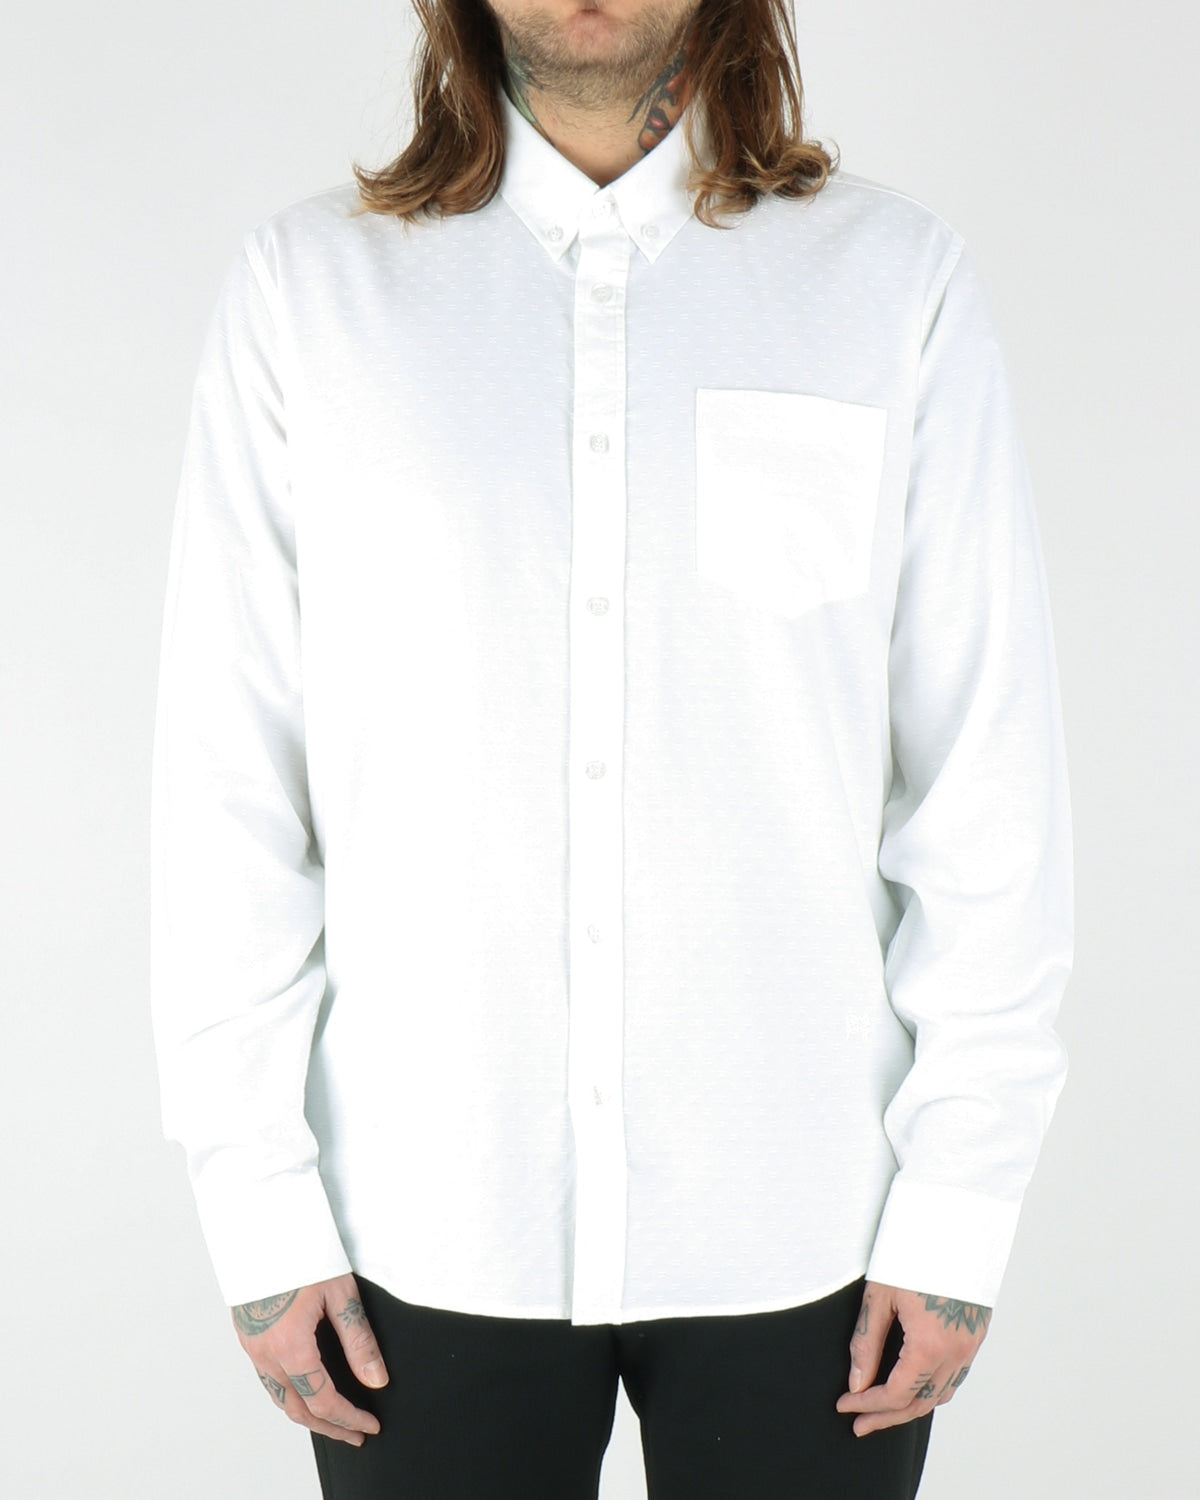 soulland_rubenstein shirt_white_view_1_3